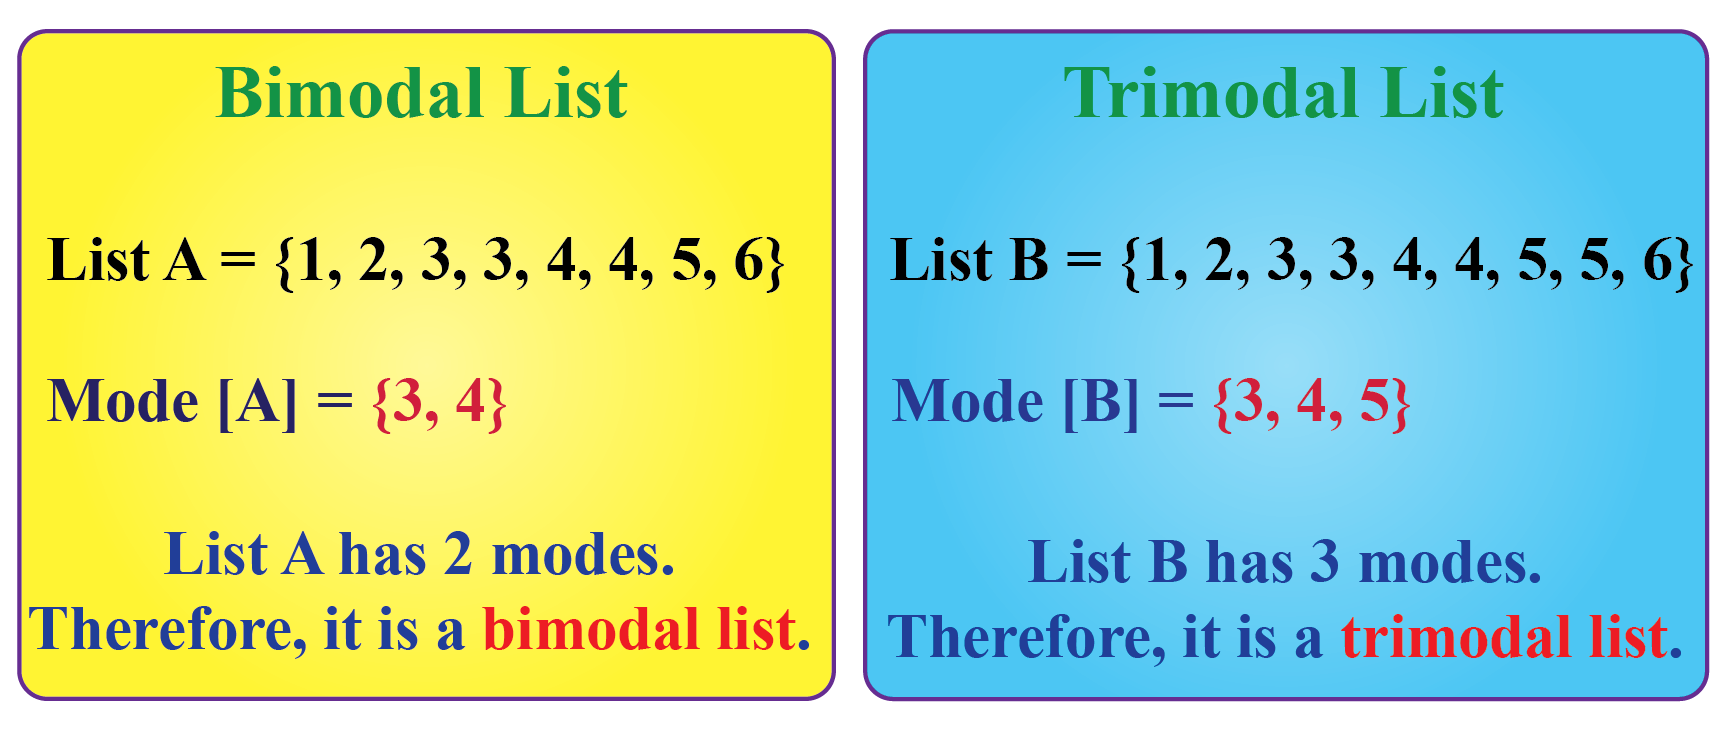 Bimodal and Trimodal types of mode with examples